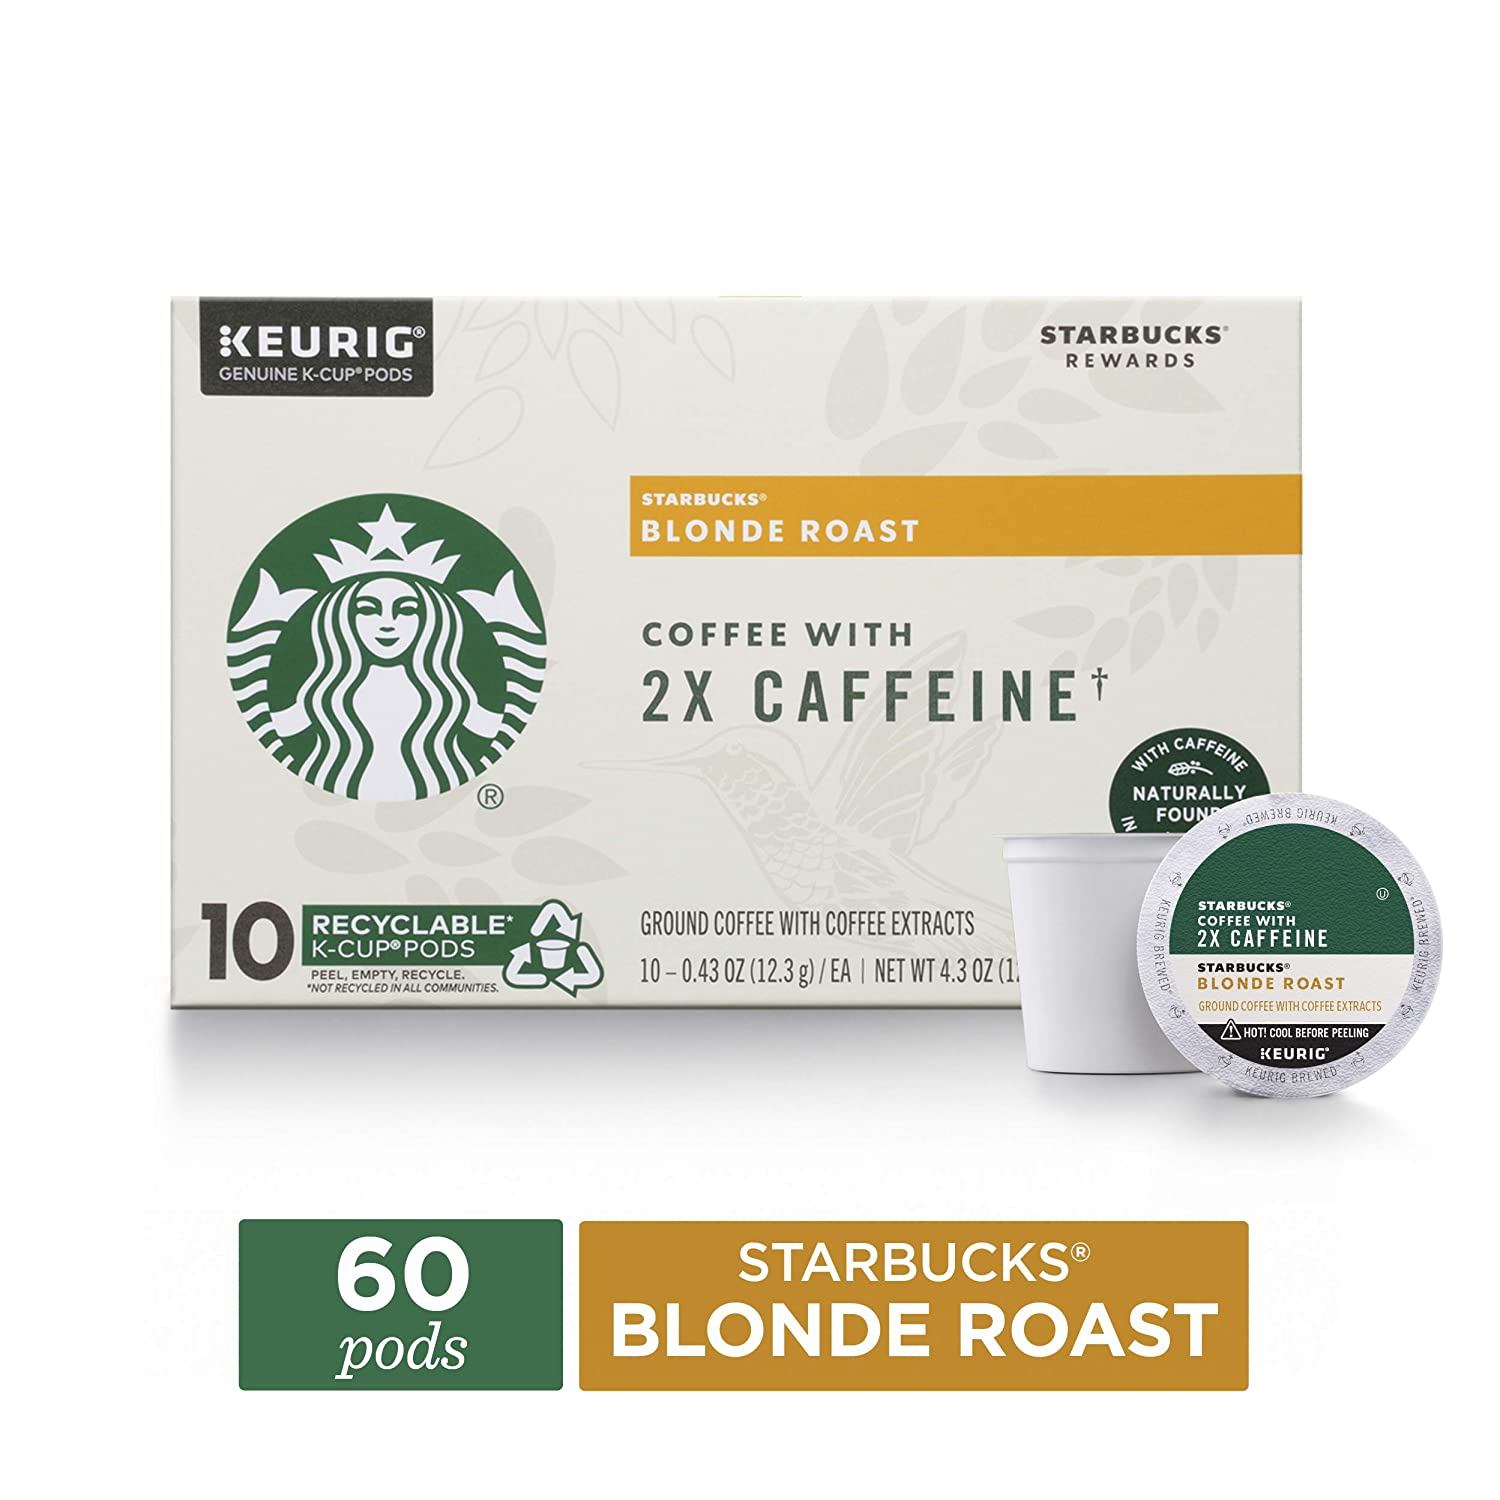 Starbucks Blonde Roast K-Cup Coffee Pods with 2X Caffeine — for Keurig Brewers — 6 boxes (60 pods total)